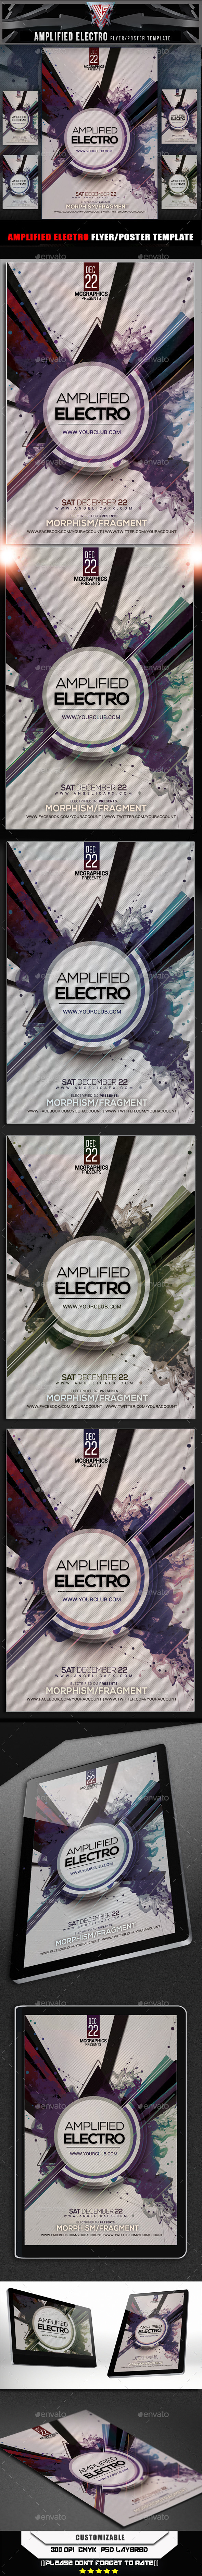 GraphicRiver Amplified Electro Flyer Template 10406236